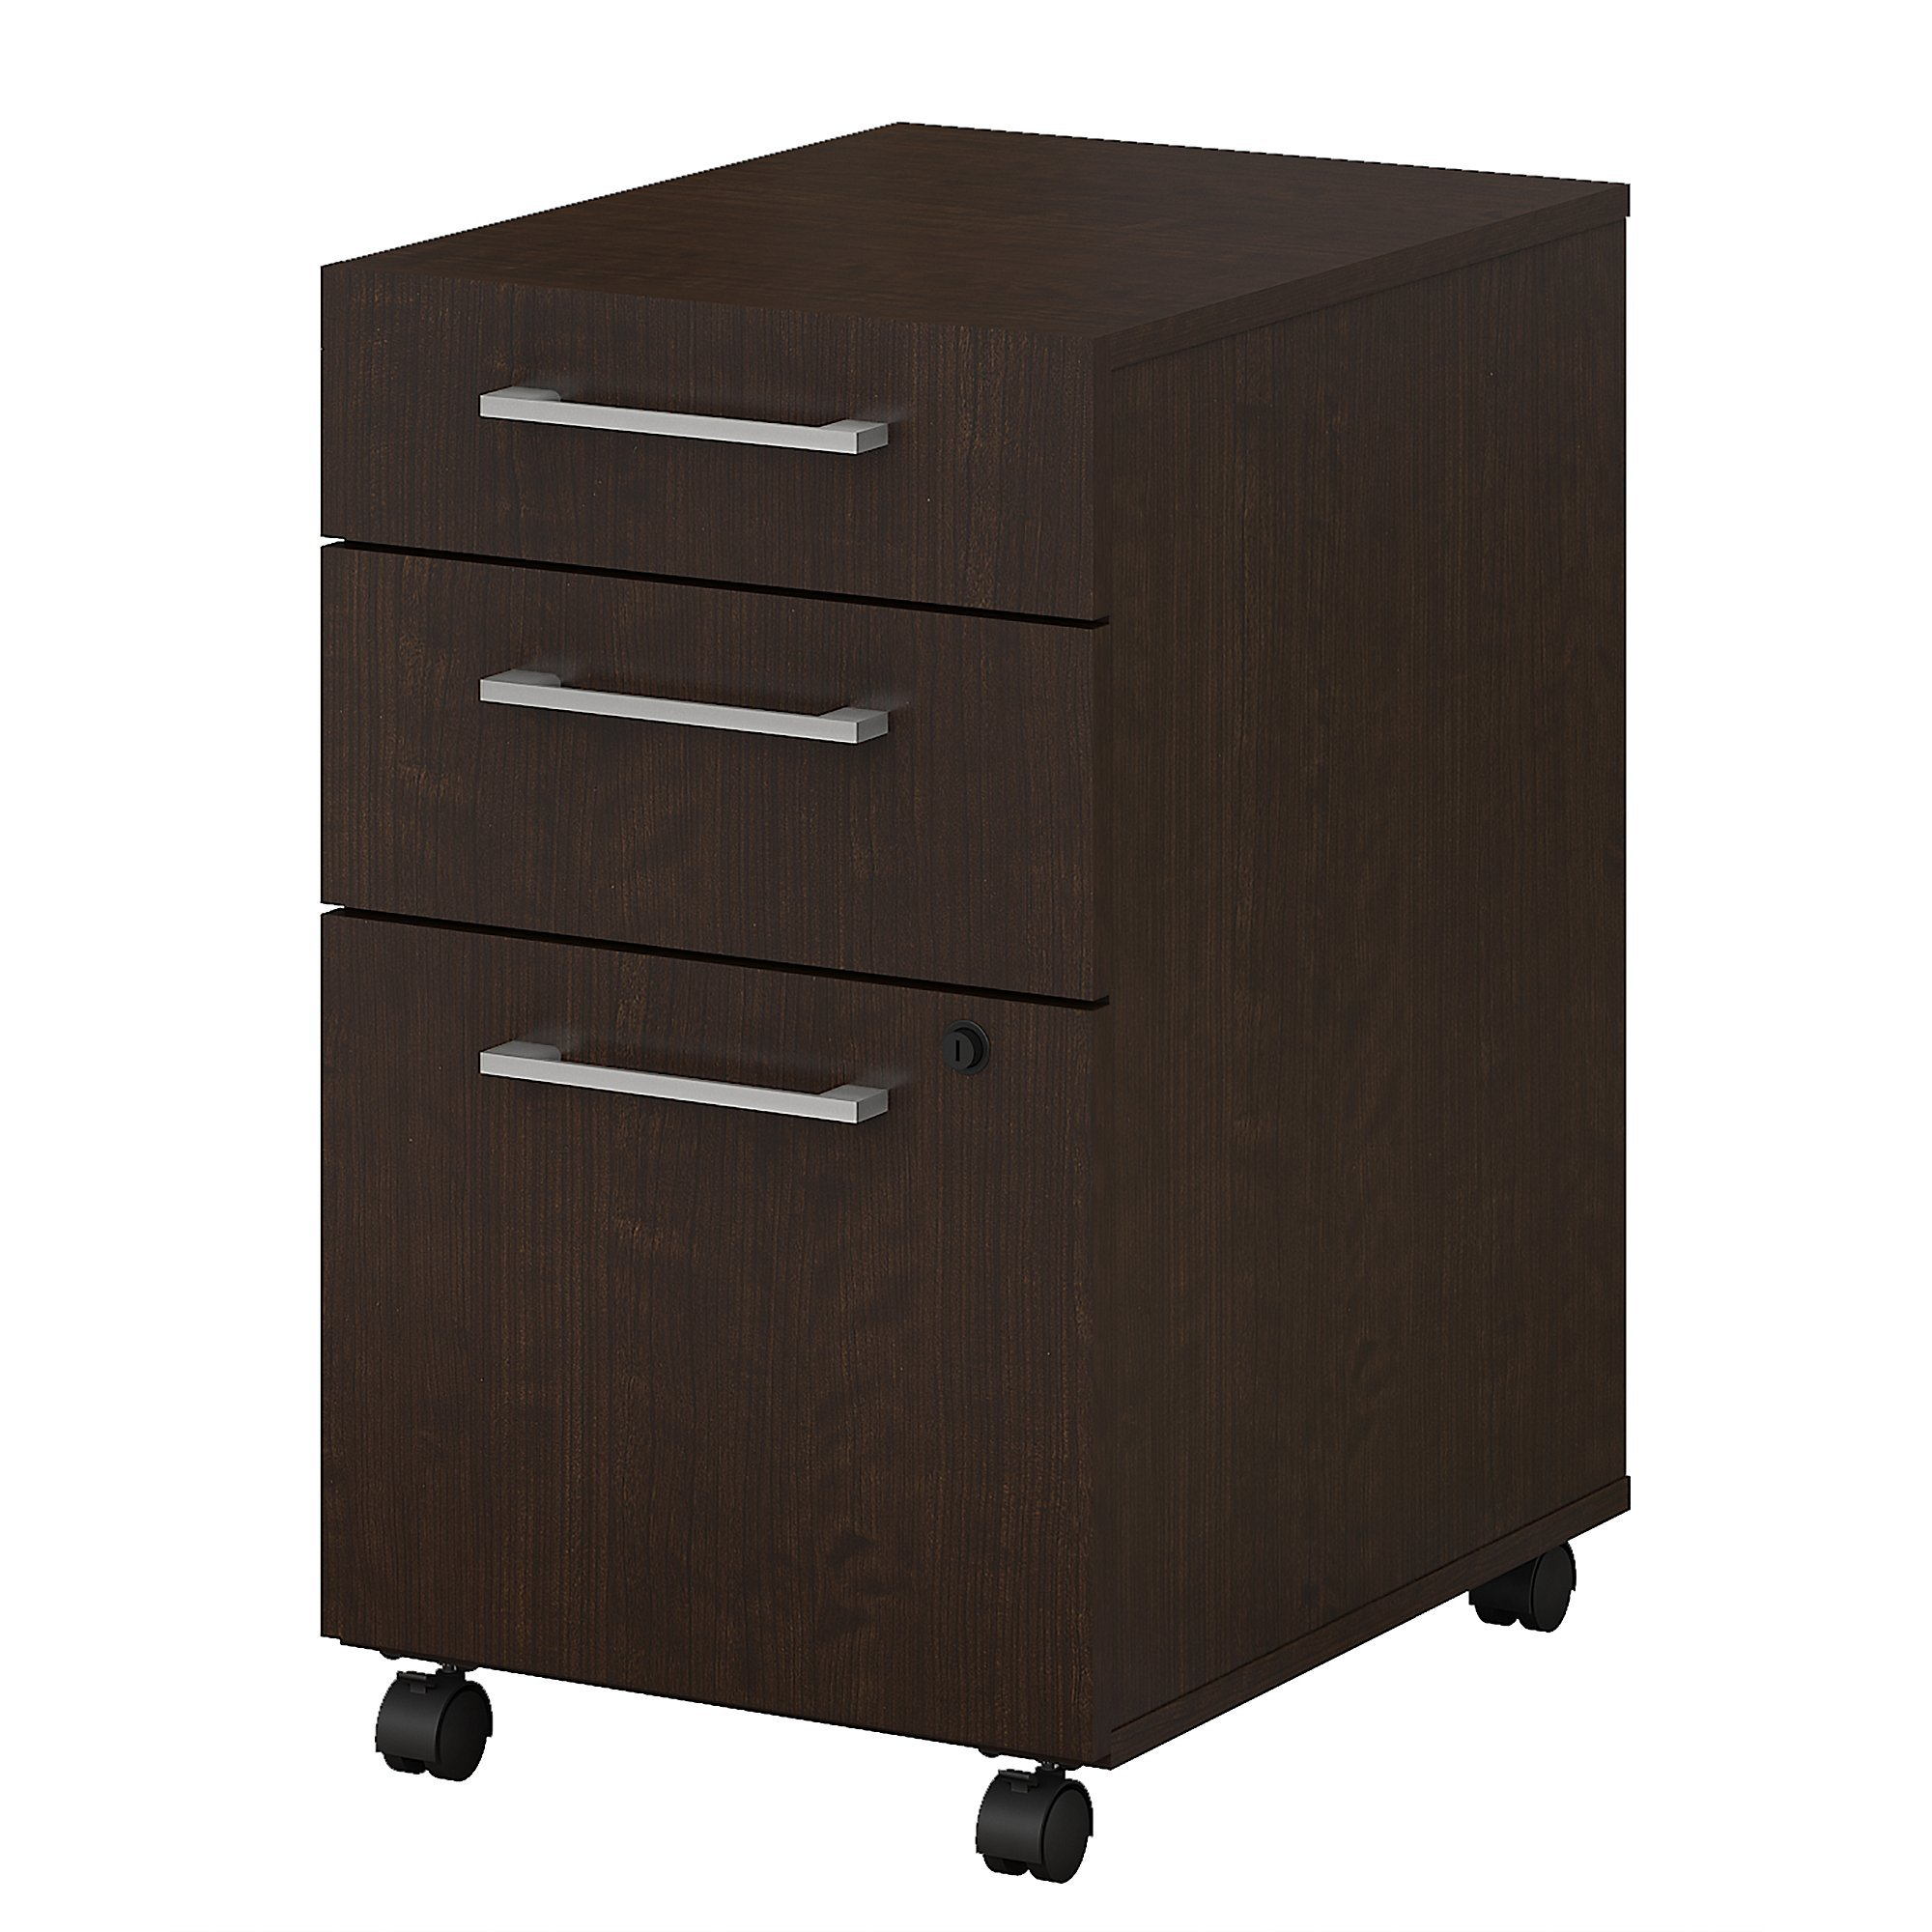 Bush Business Furniture 400 Series 3 Drawer Mobile File Cabinet in Mocha Cherry by Bush Business Furniture